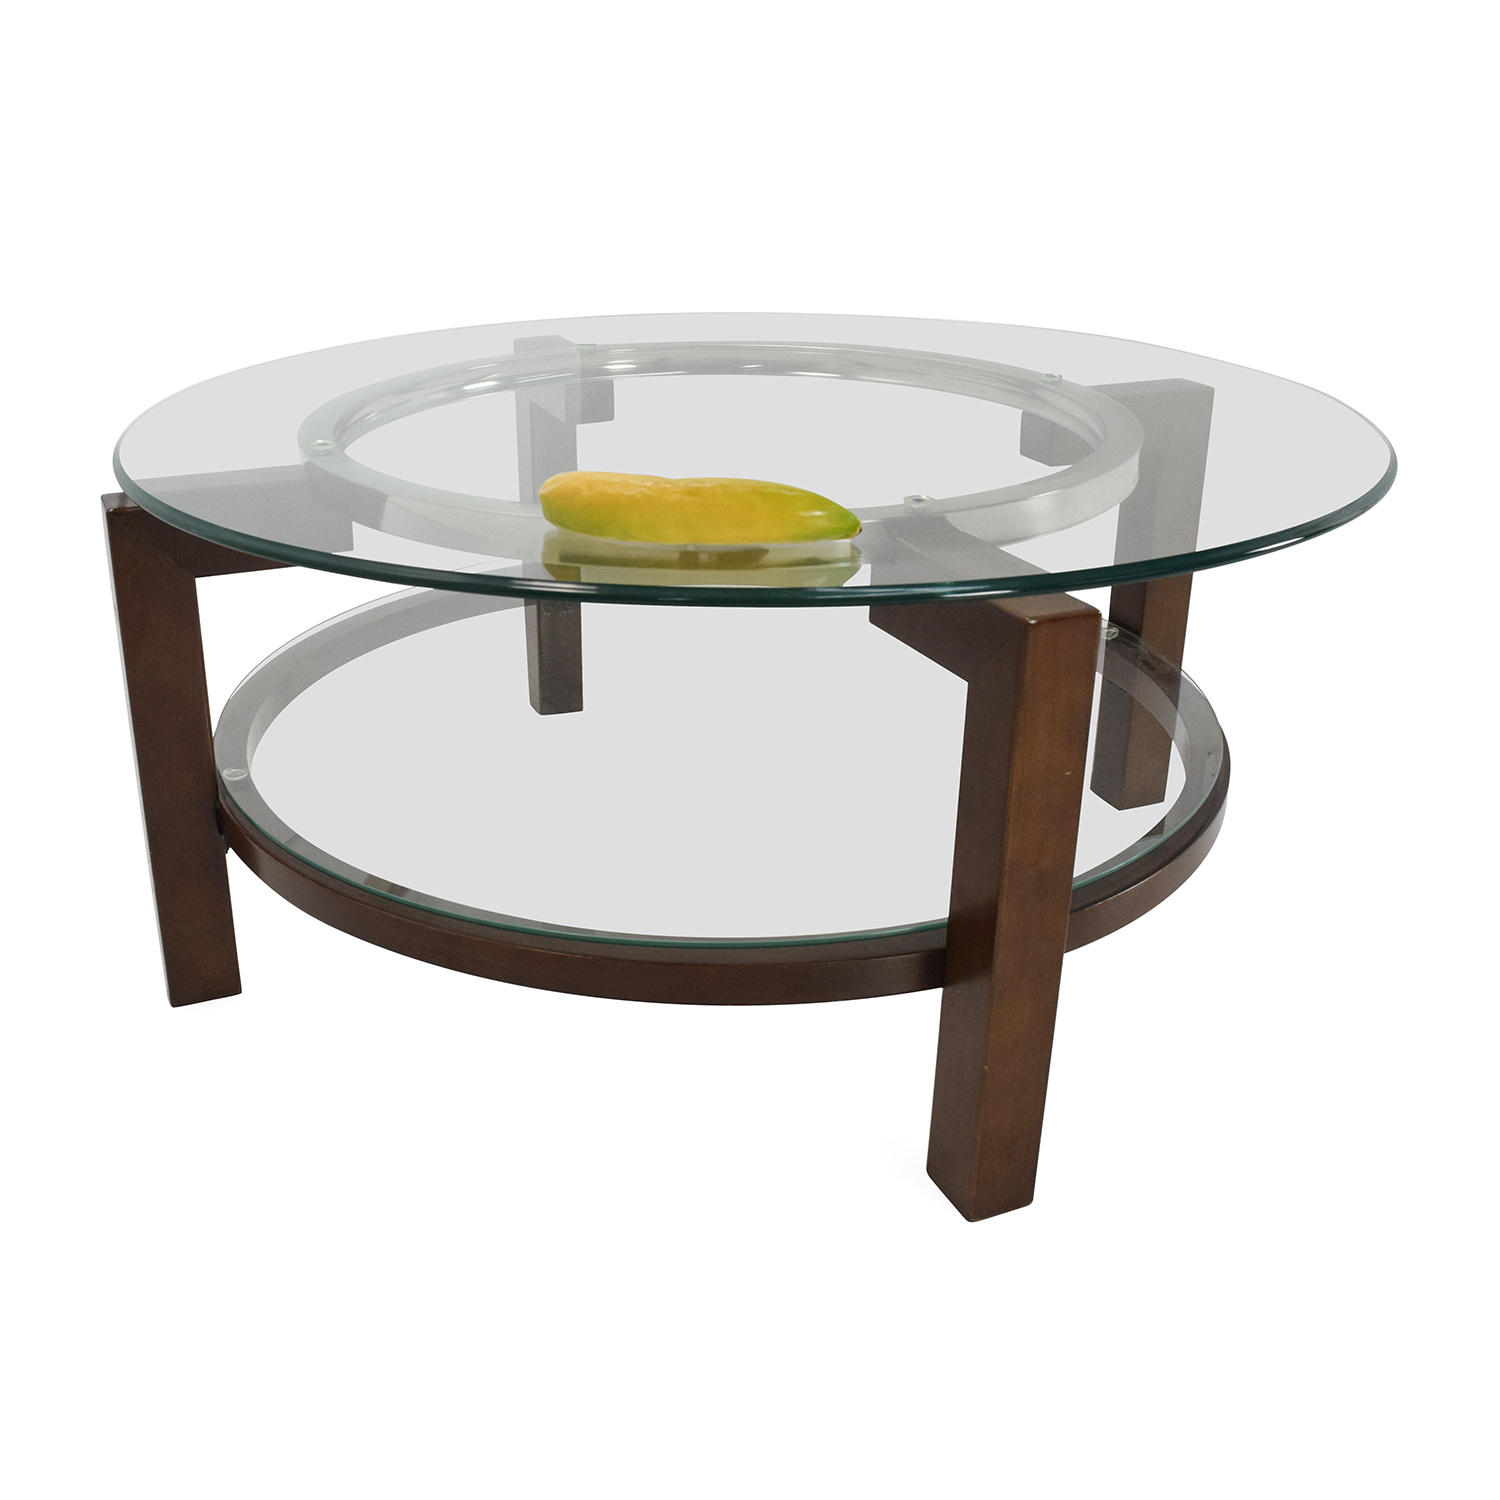 Buy Glass Coffee Table 88 Off Macy 39s Macy 39s Glass Top Coffee Table Tables